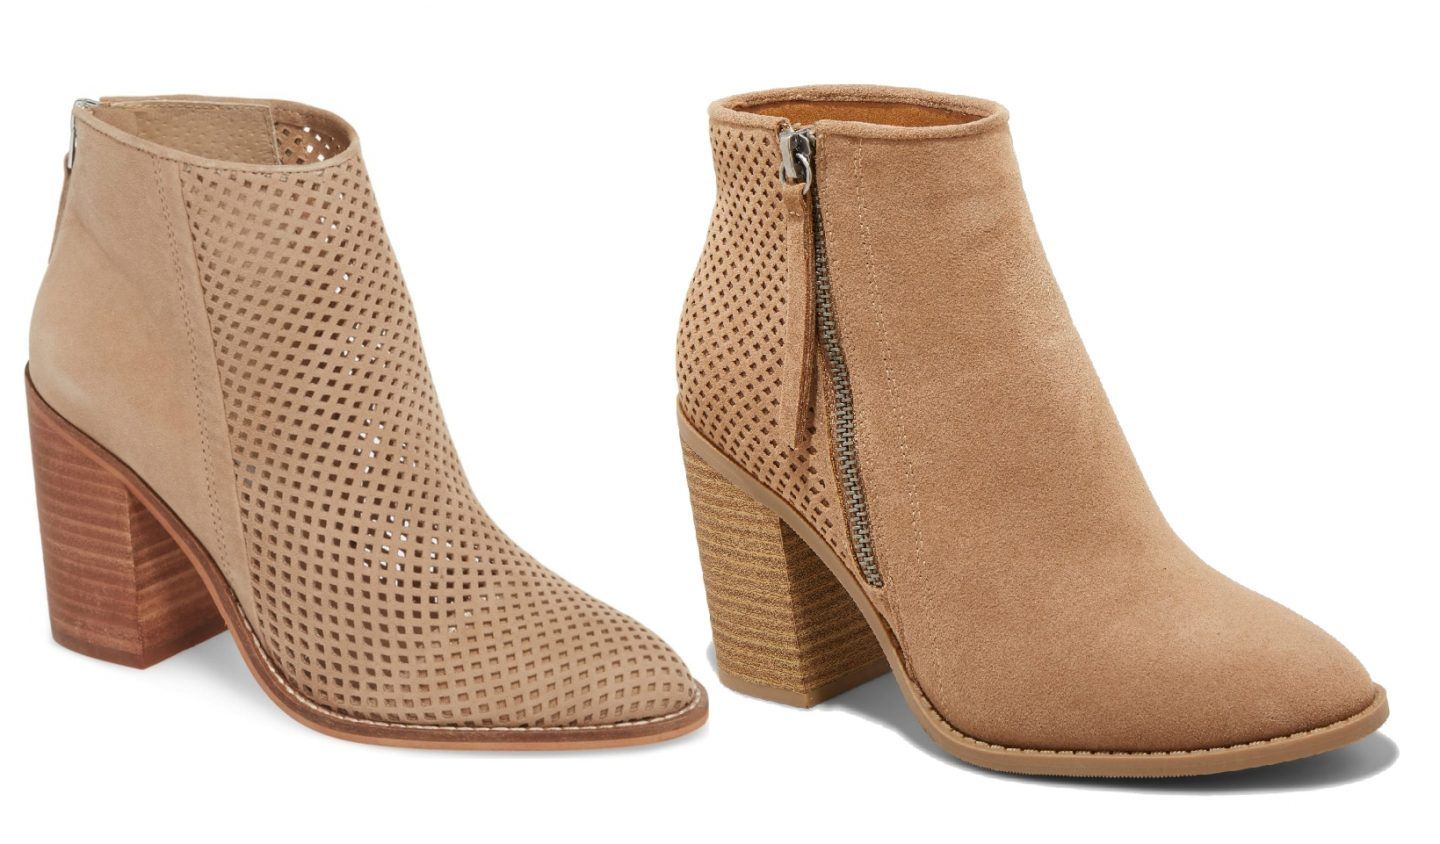 nordstrom anniversary sale dupes, perforated bootie